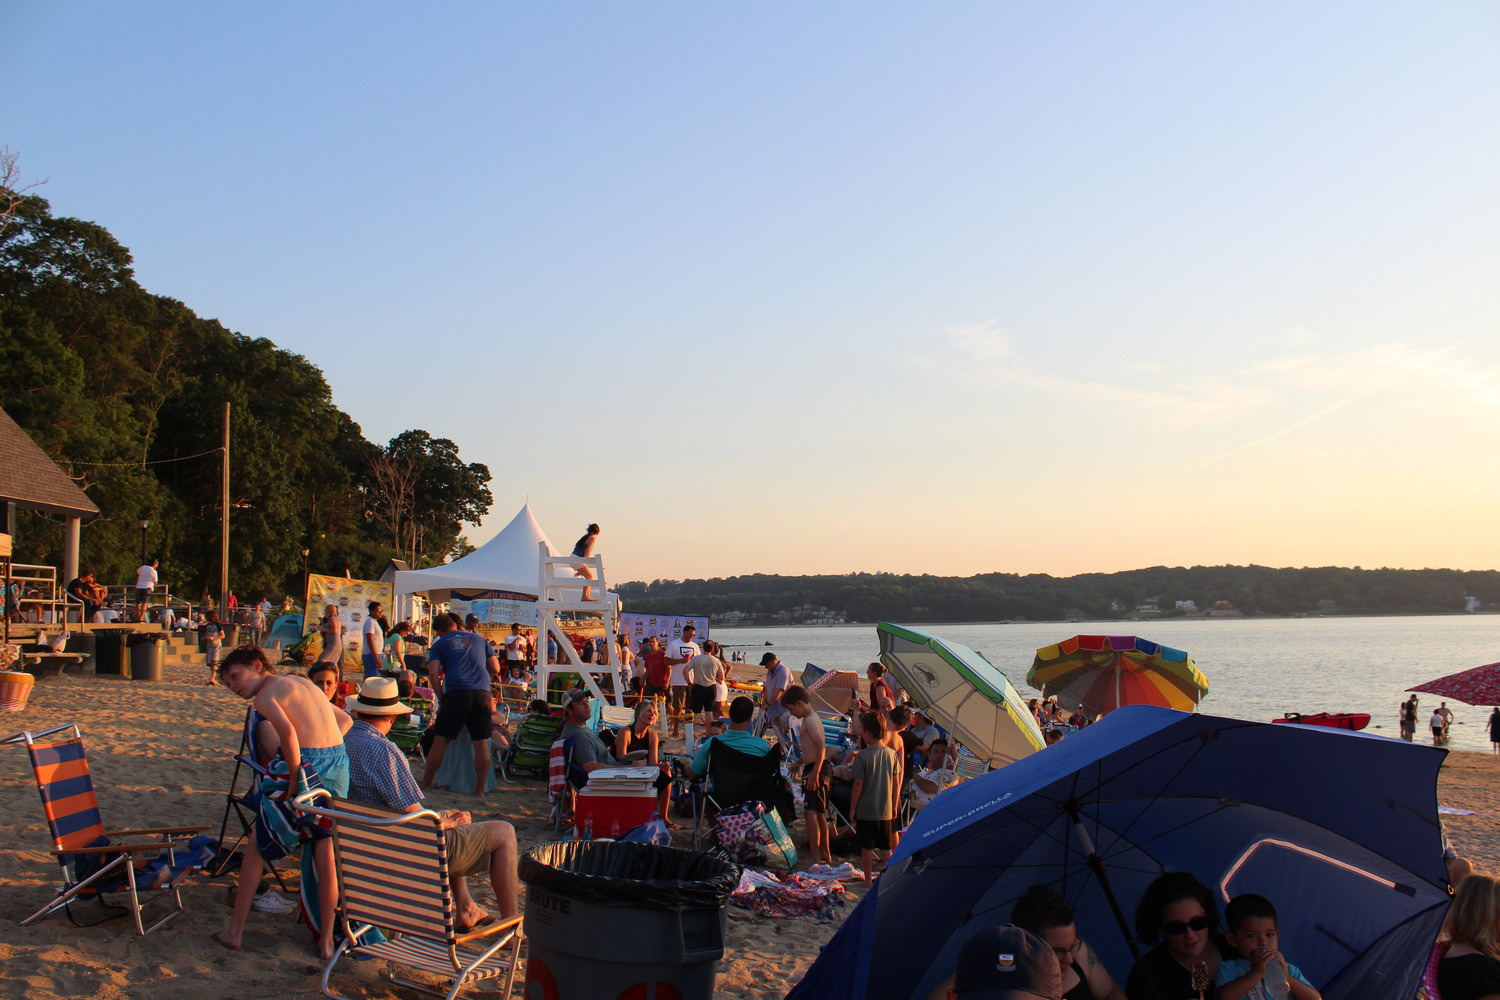 As the day set on BeachFest, residents remained shoreside with their blankets and umbrellas in anticipation for the evening's musical lineup.